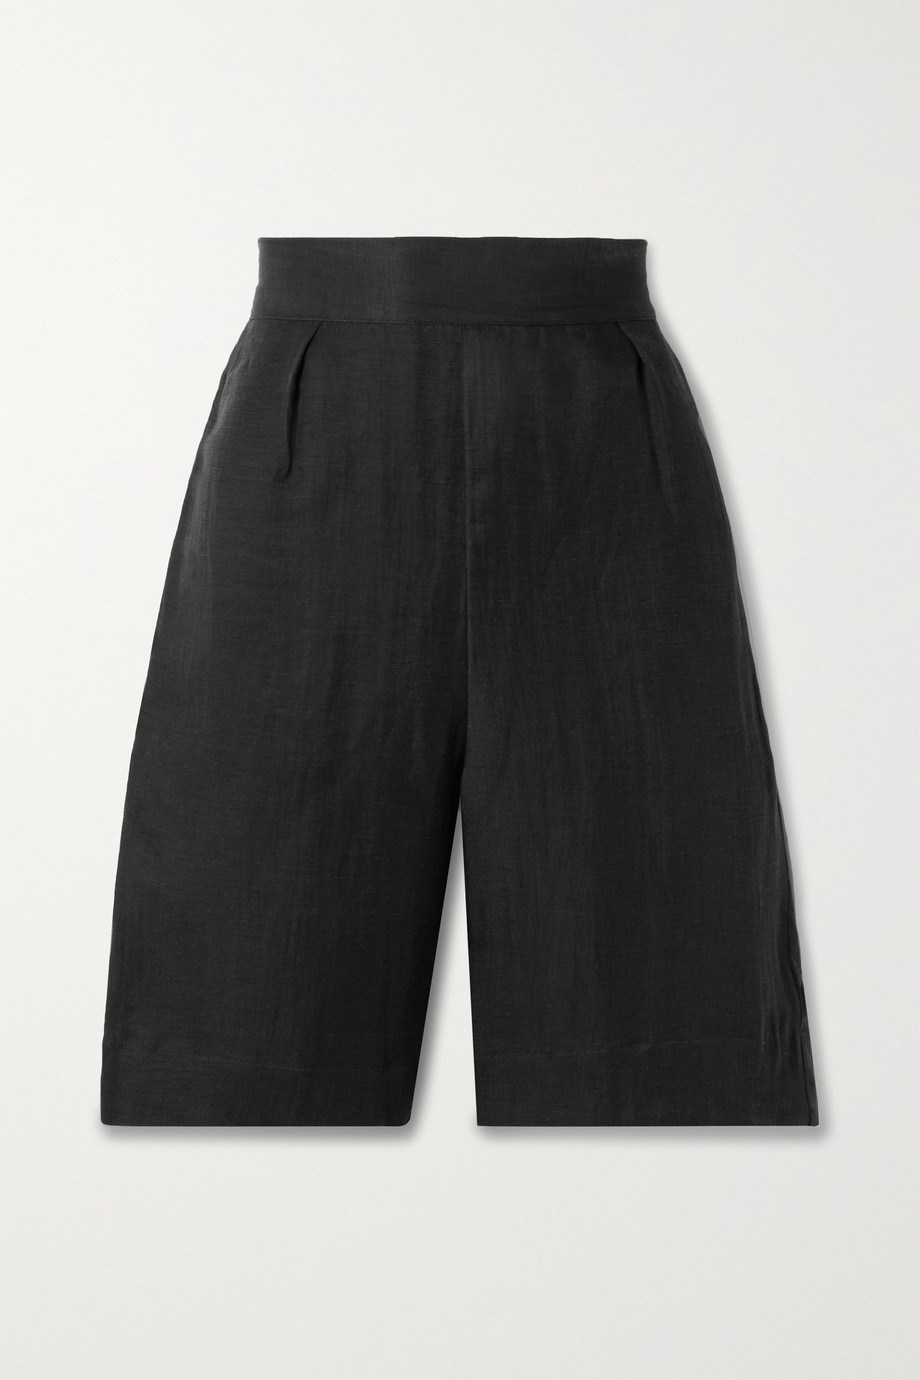 Anemos + NET SUSTAIN linen and cupro-blend shorts